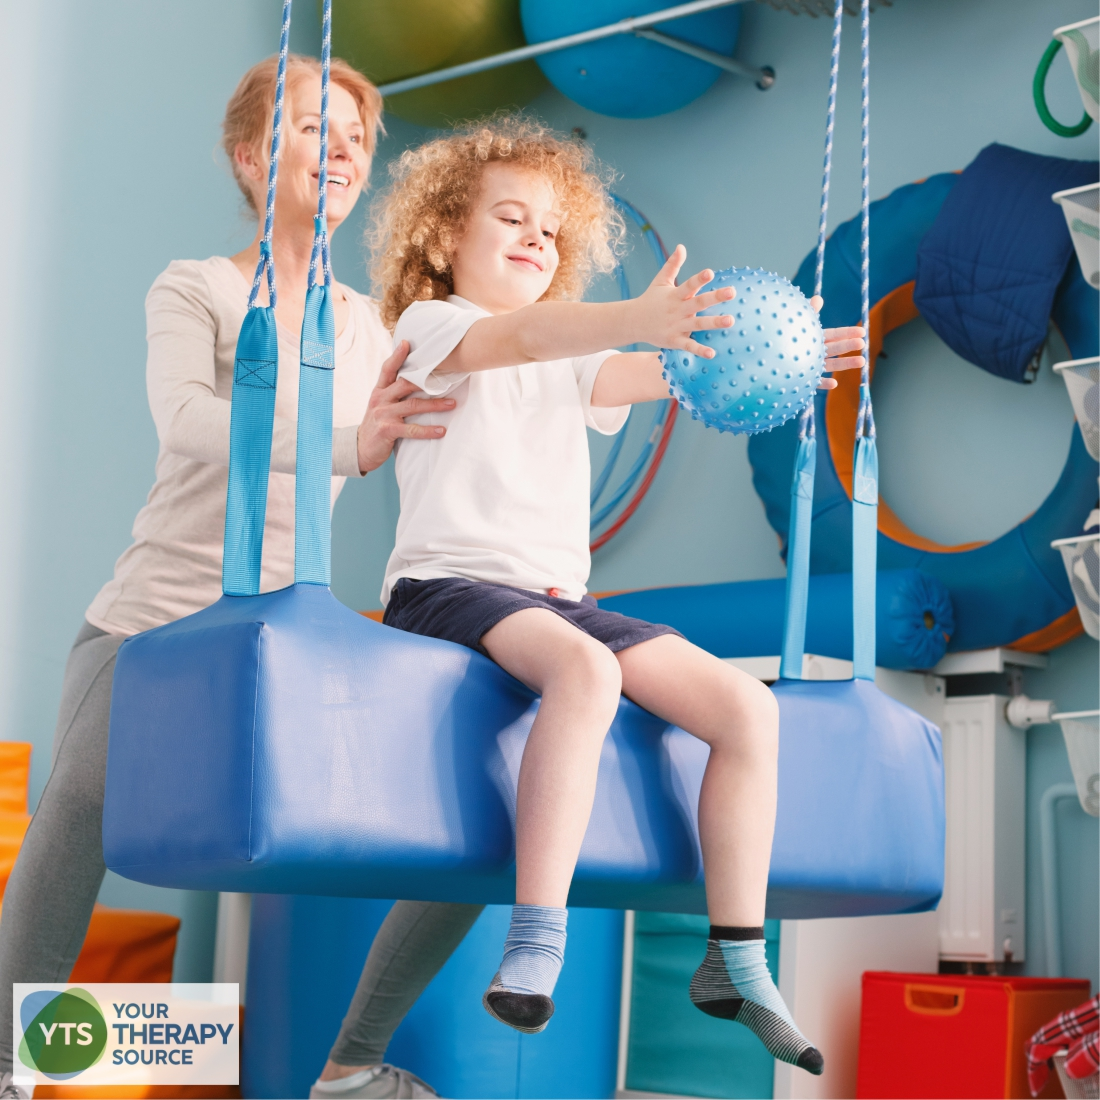 The American Journal of Occupational Therapy recently published a research review on sensory techniques and sensory environmental modifications for children with sensory integration difficulties.